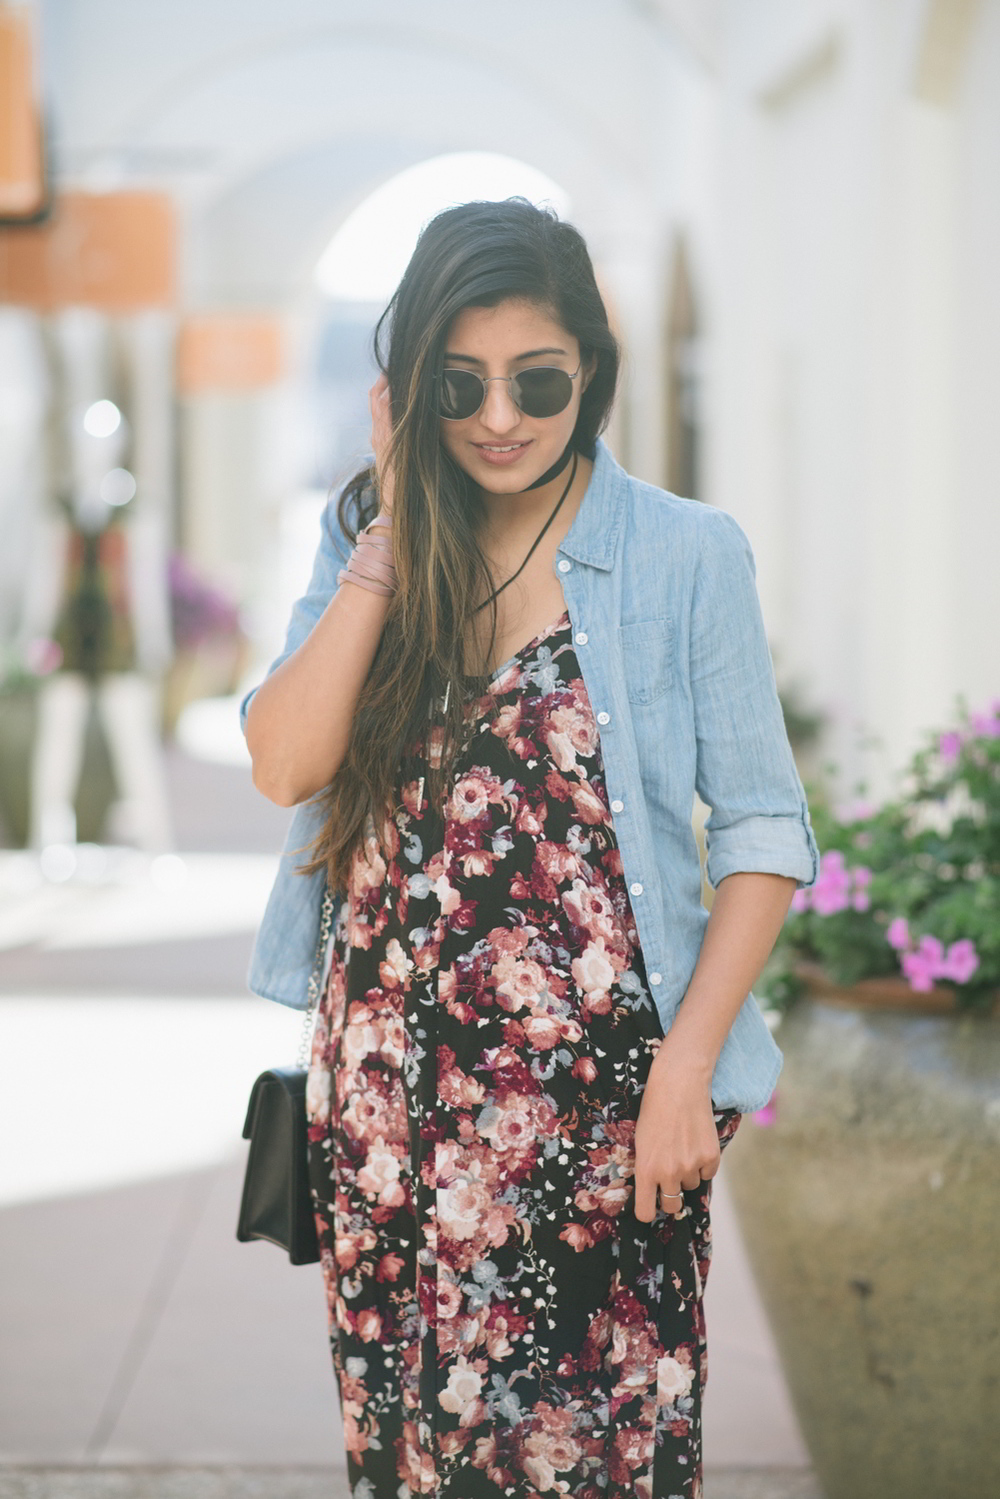 boho-spring-streetstyle-floral-maxi-dress-chambray-shirt